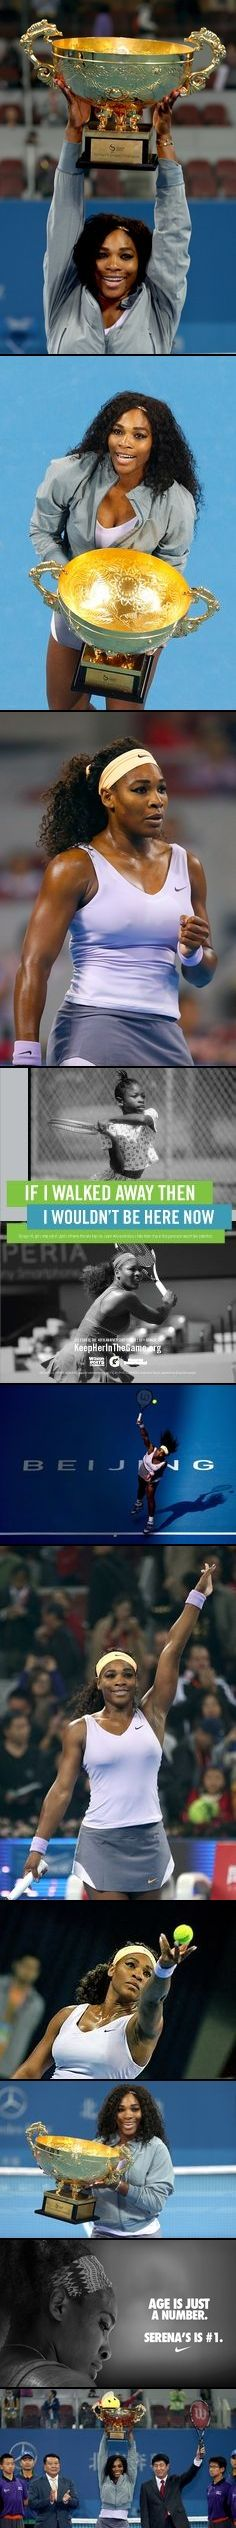 Beijing, China - World No. 1 Serena Williams wins the $5 million China Open, October 2013! Serena, playing in a tournament for the 1st time since winning her 5th U.S. Open crown last month, claimed a remarkable 10th title this year and the 56th of her career. CONGRATULATIONS #SERENA!!